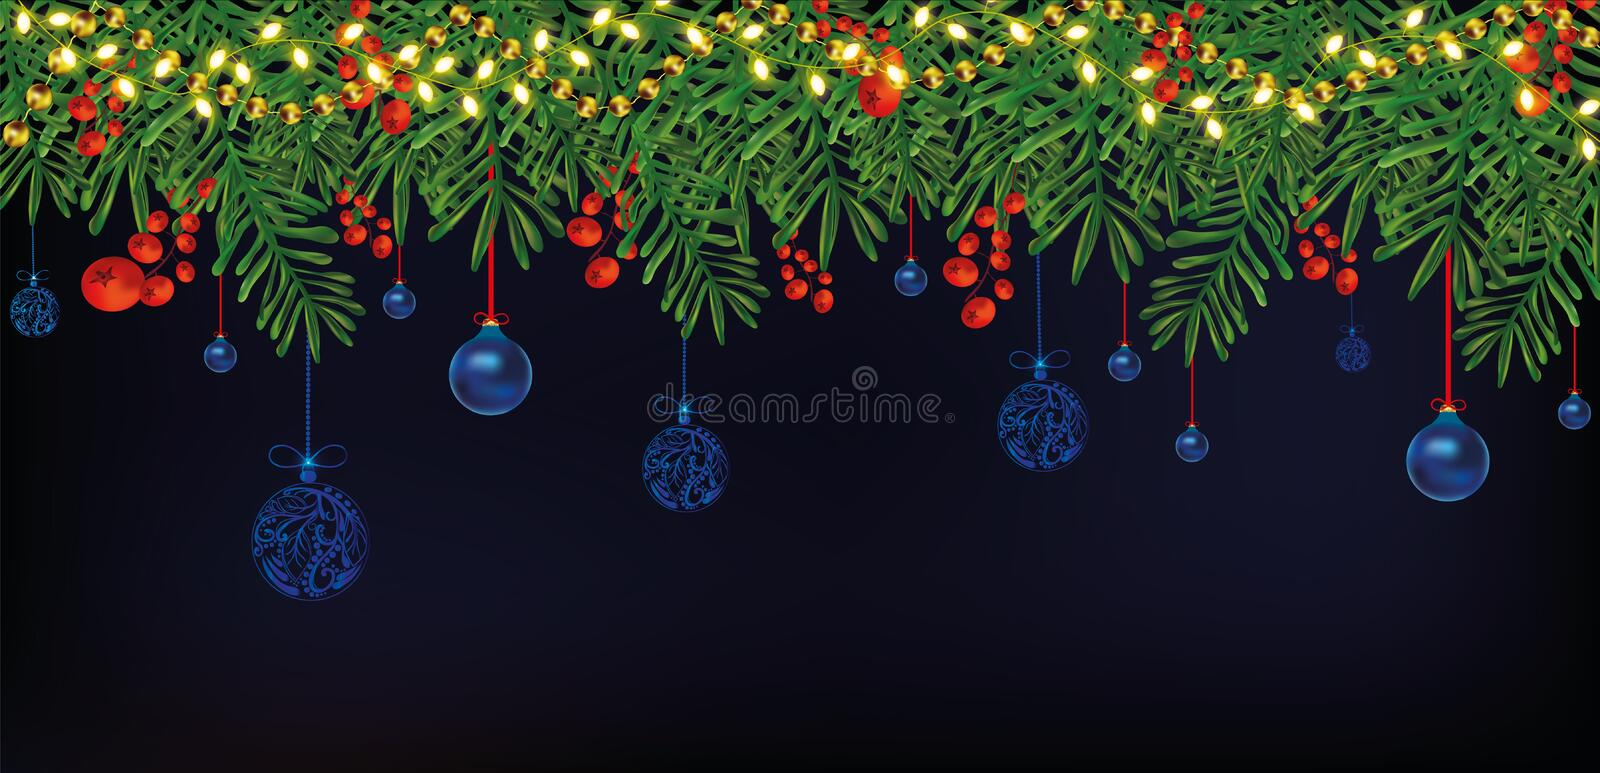 Border with Christmas green branches, holly red berries on dark blue background. Christmas blue balls hanging on tree royalty free illustration